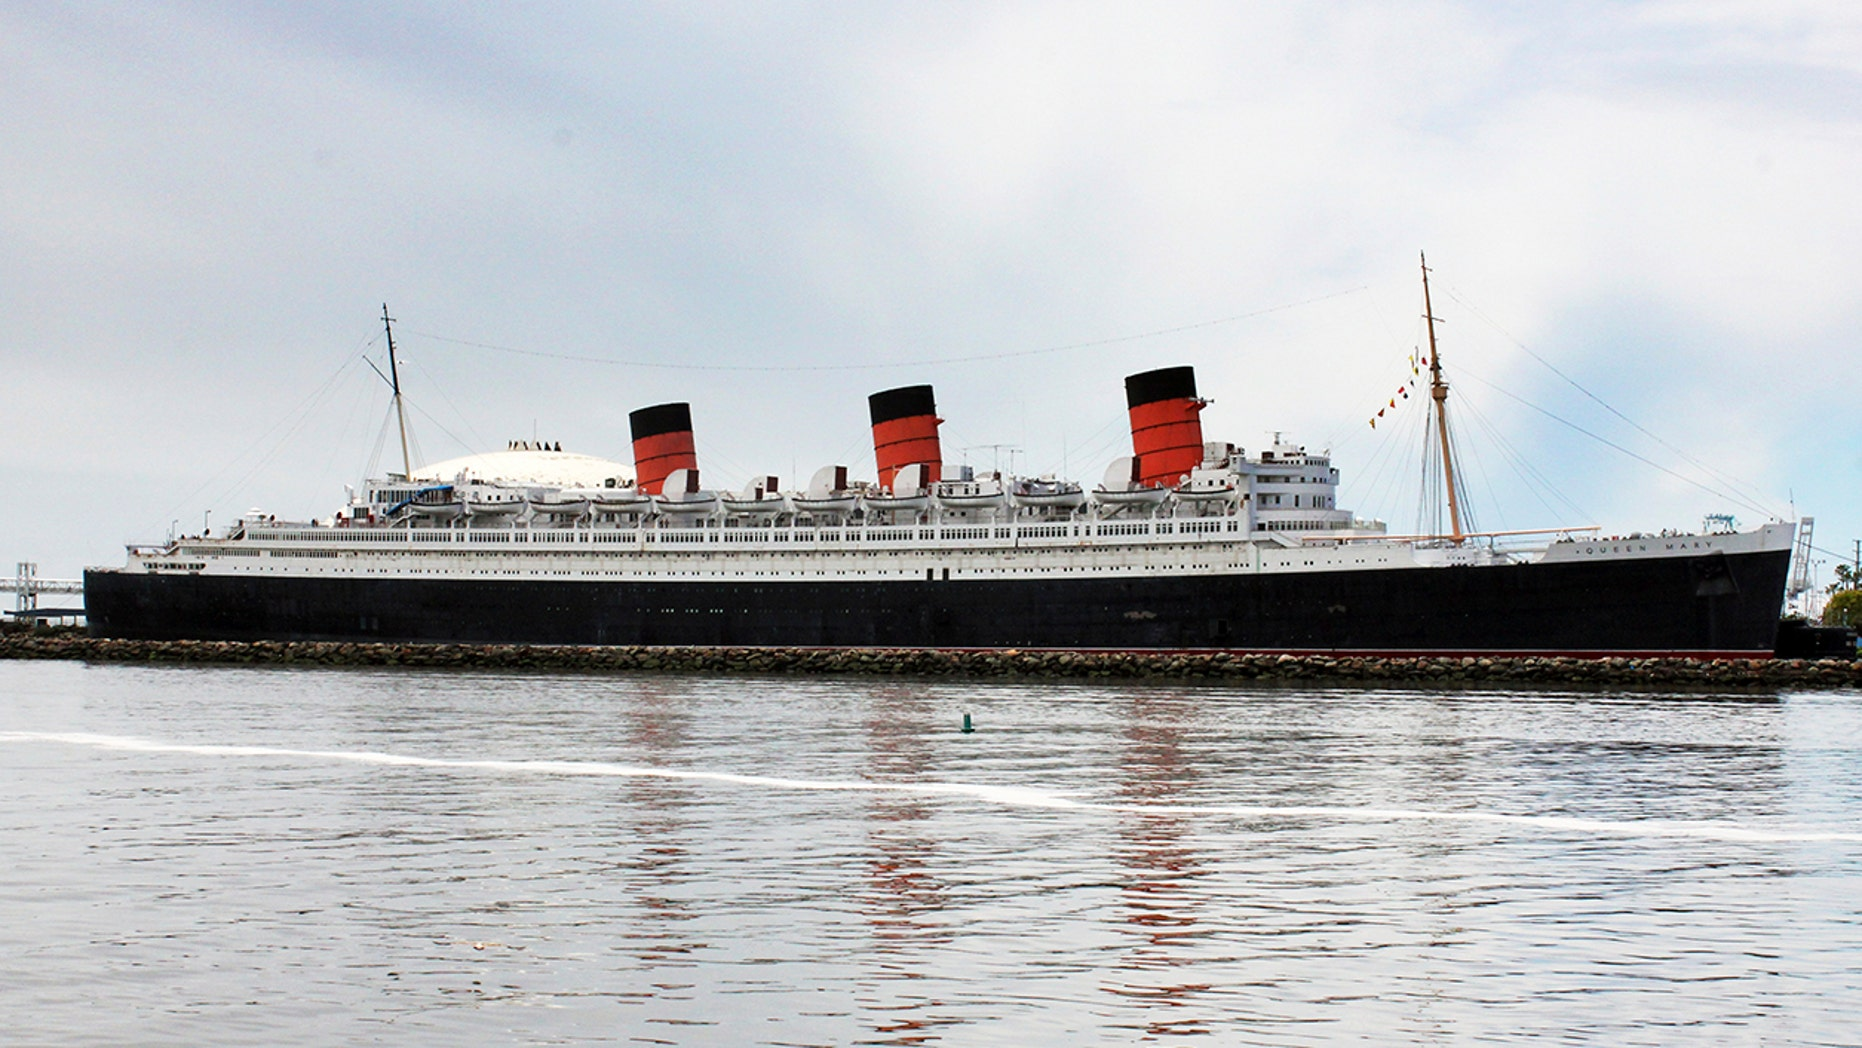 The ocean liner Queen Mary is seen in this May 15, 2015 photo.